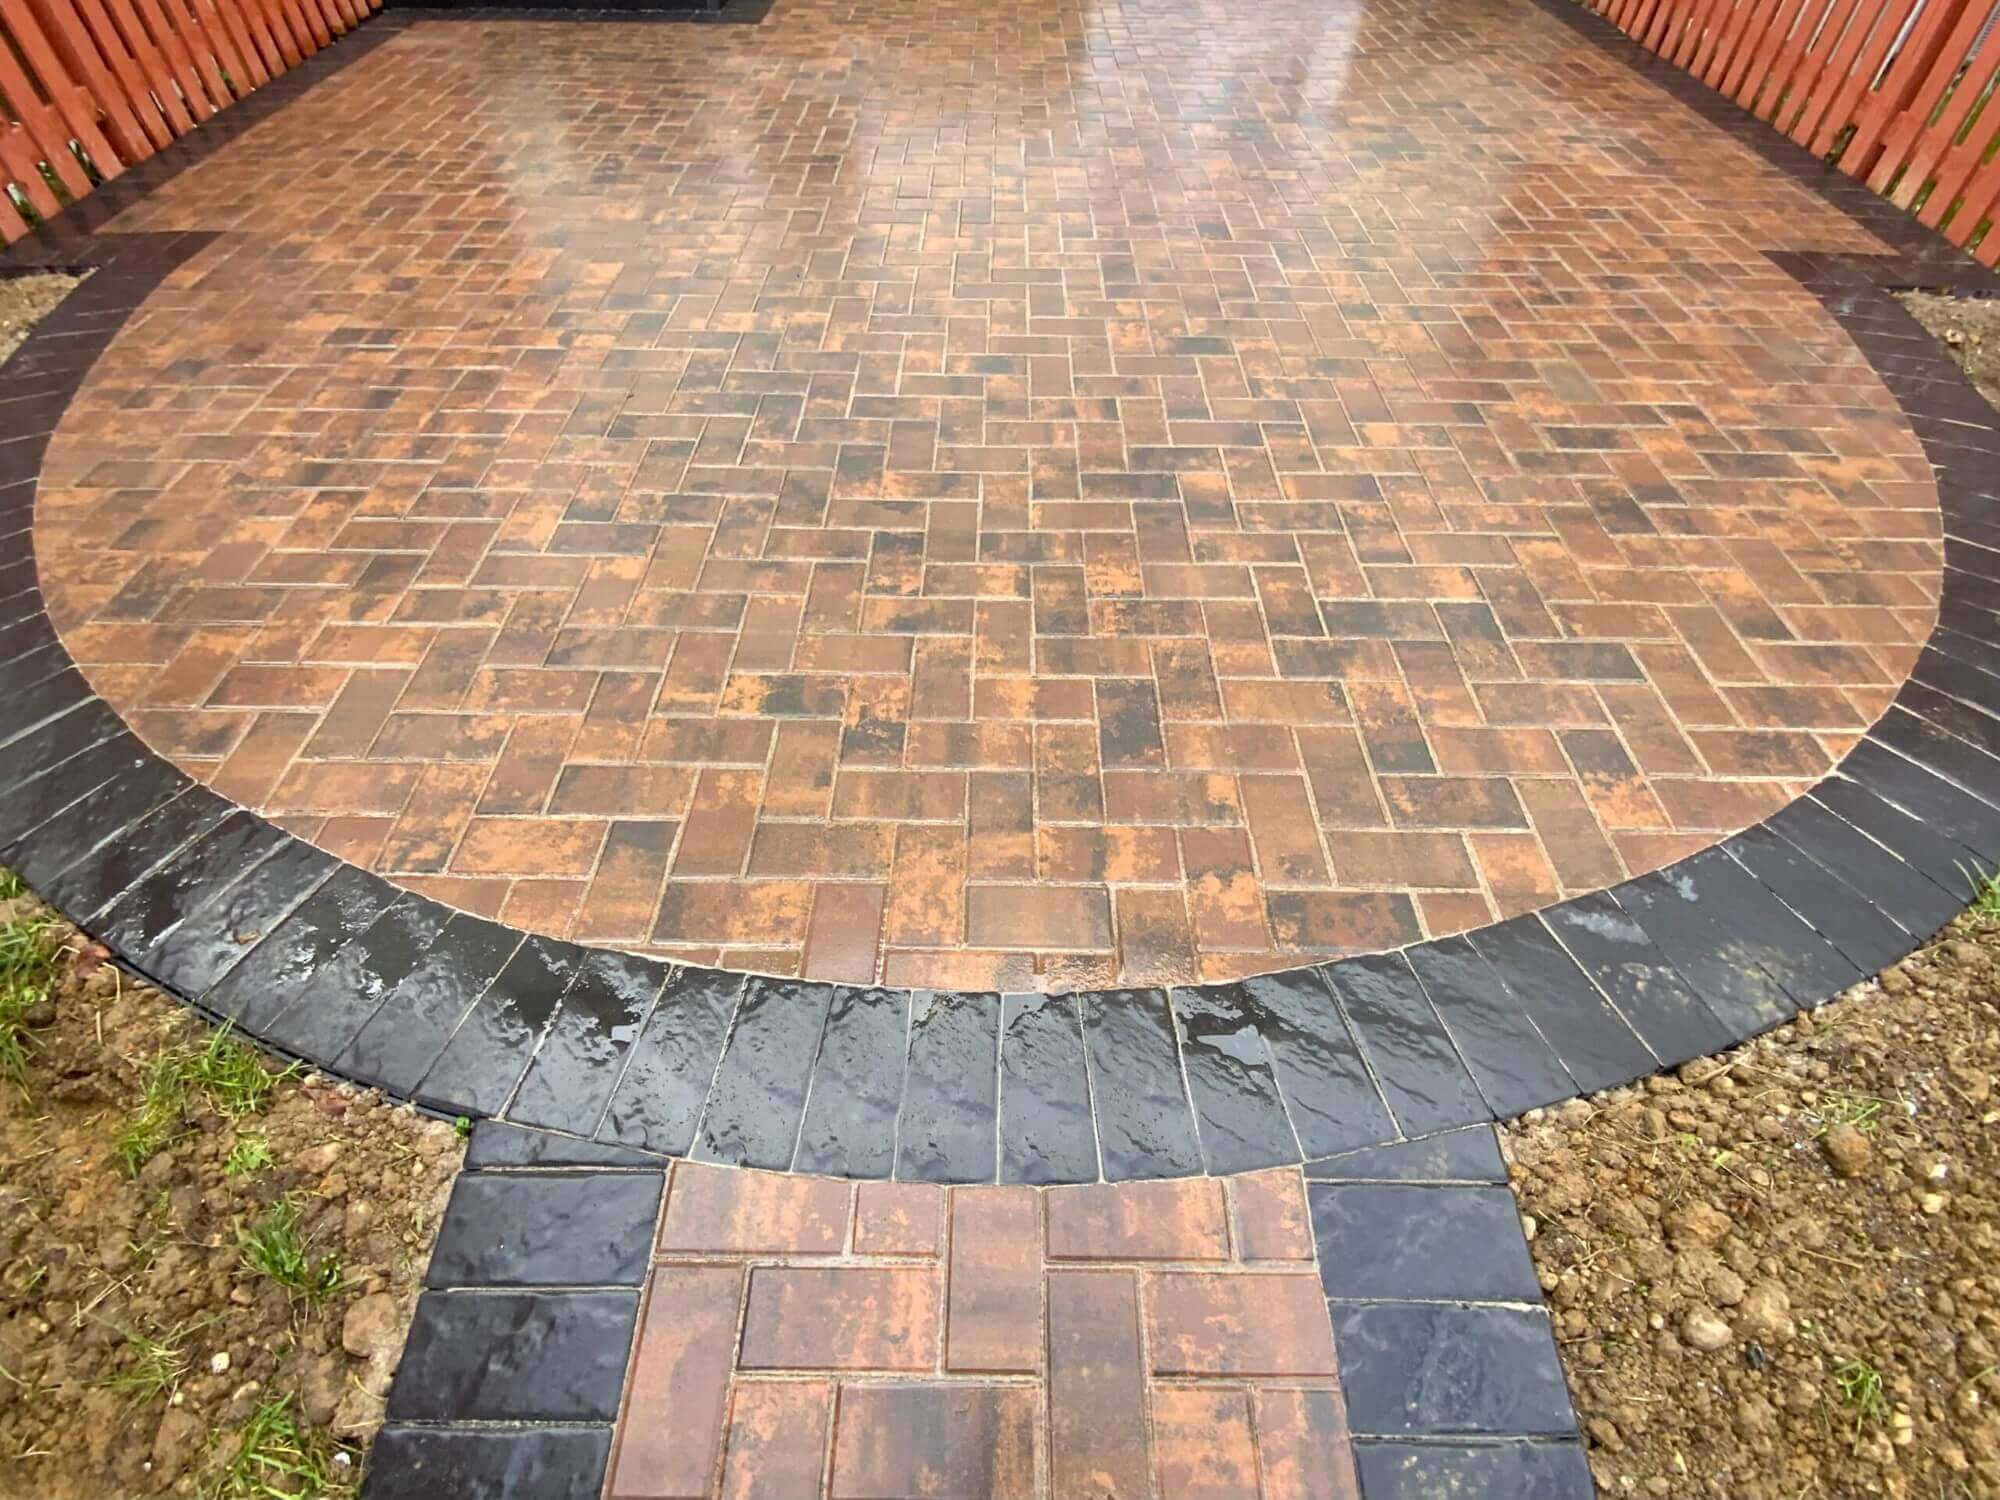 After 3 townhouse patio